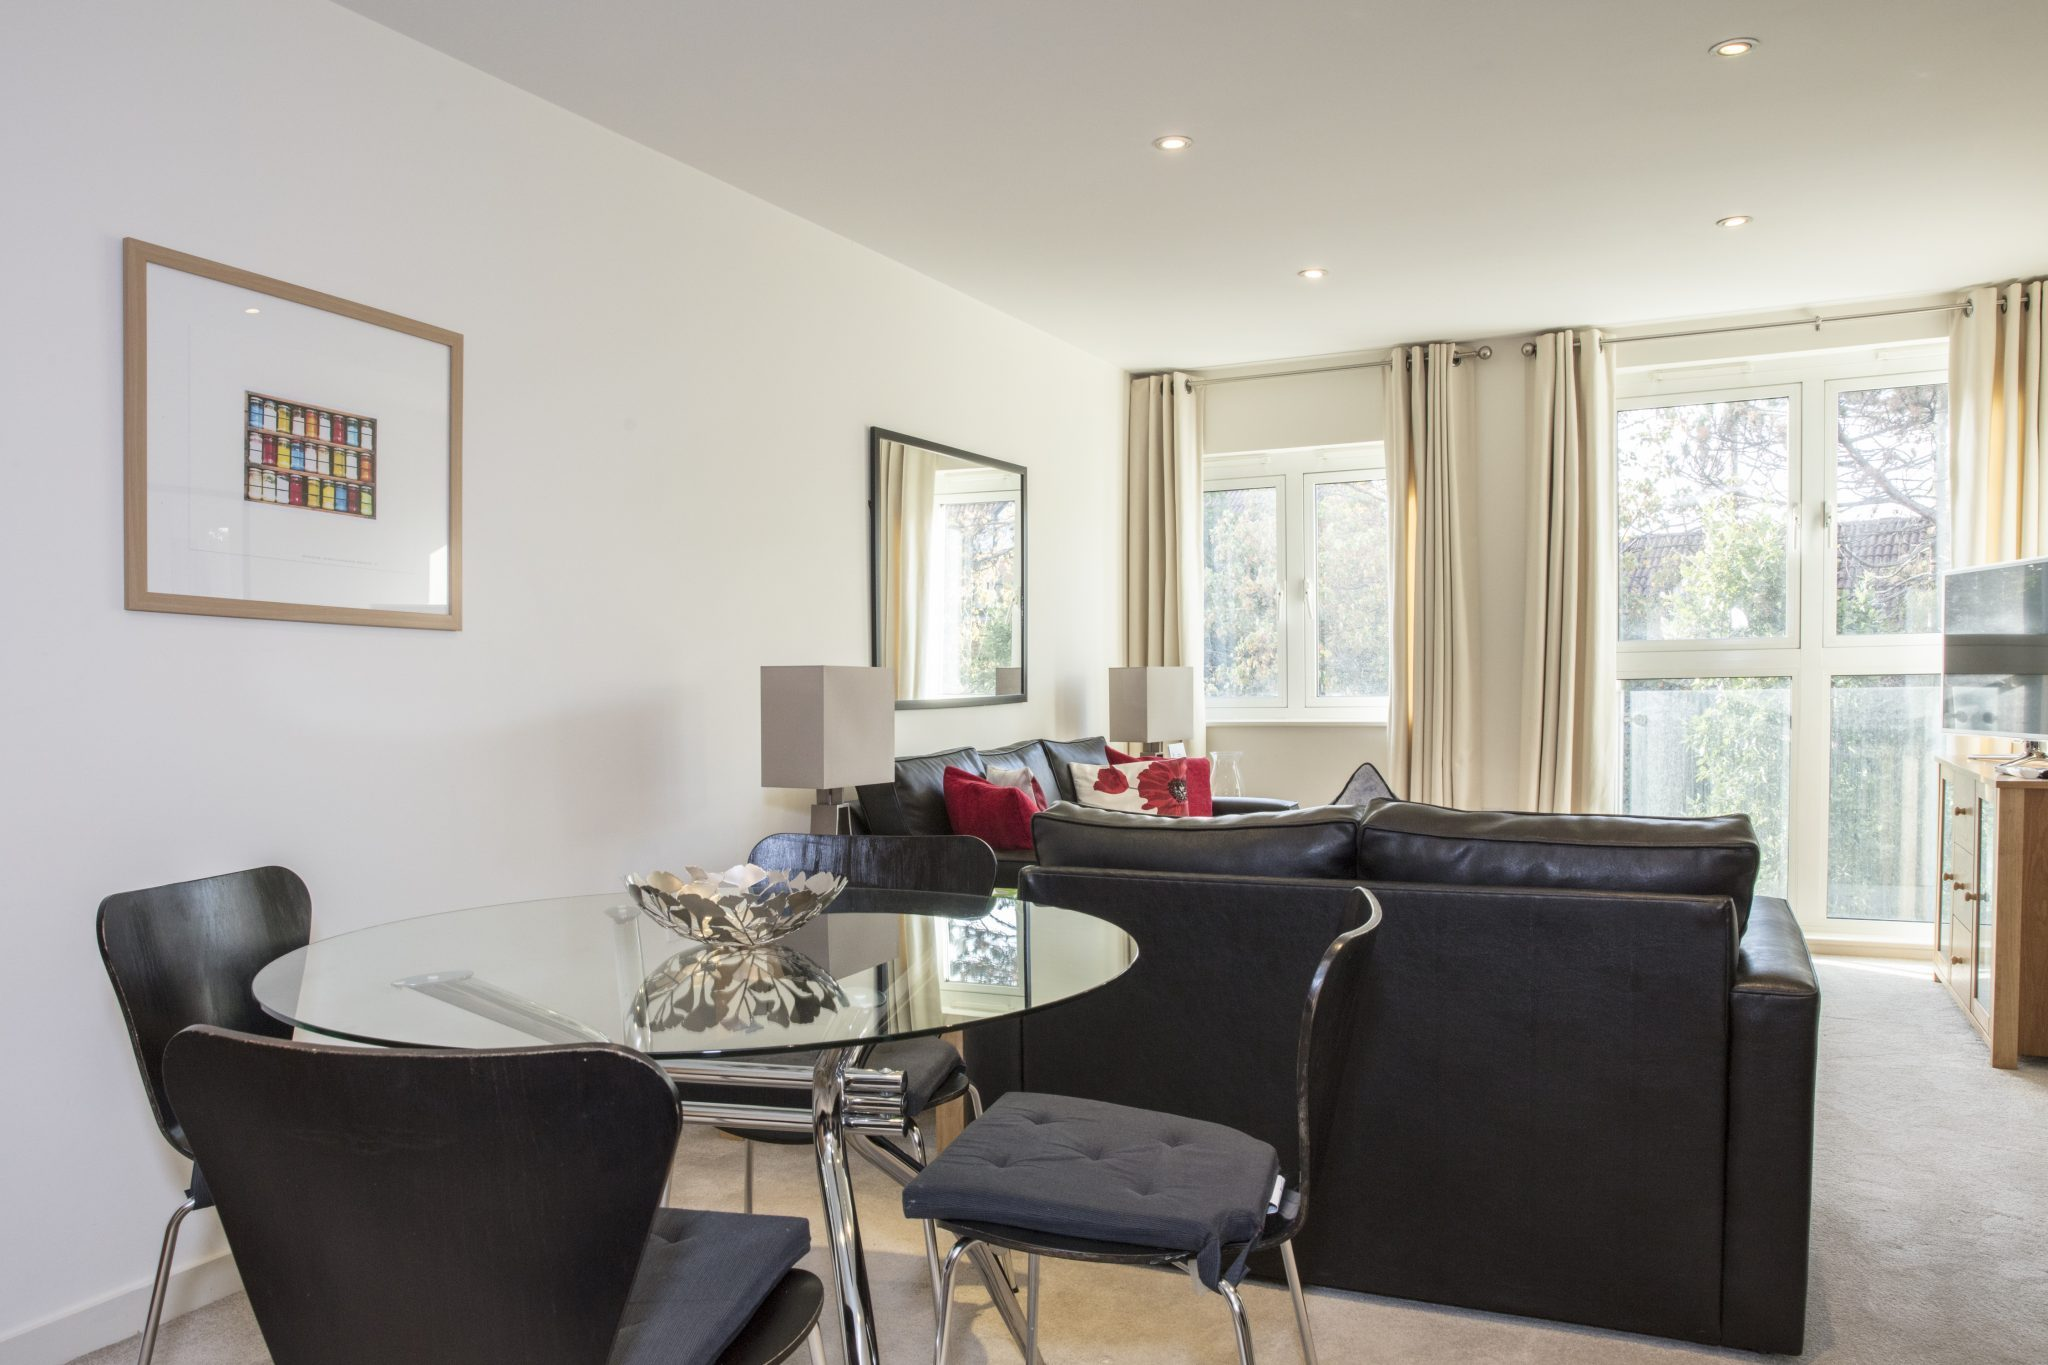 Kensington-Corporate-Apartments-Central-London-|Stylish-Short-Let-Apartments-|-Free-Wifi-|-Fully-Equipped-Kitchen-|-|0208-6913920|-Urban-Stay